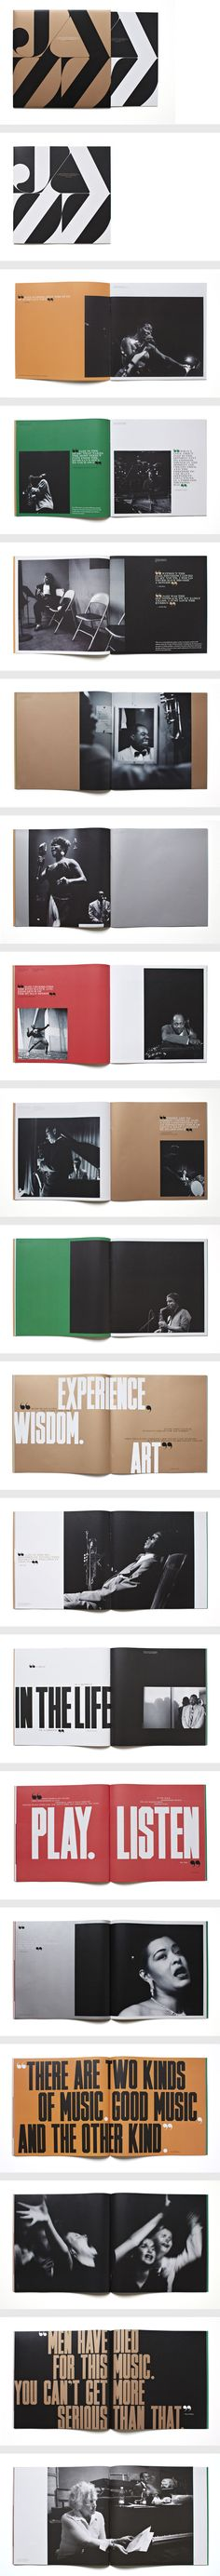 Jazz FM Booklet by Matt Willey